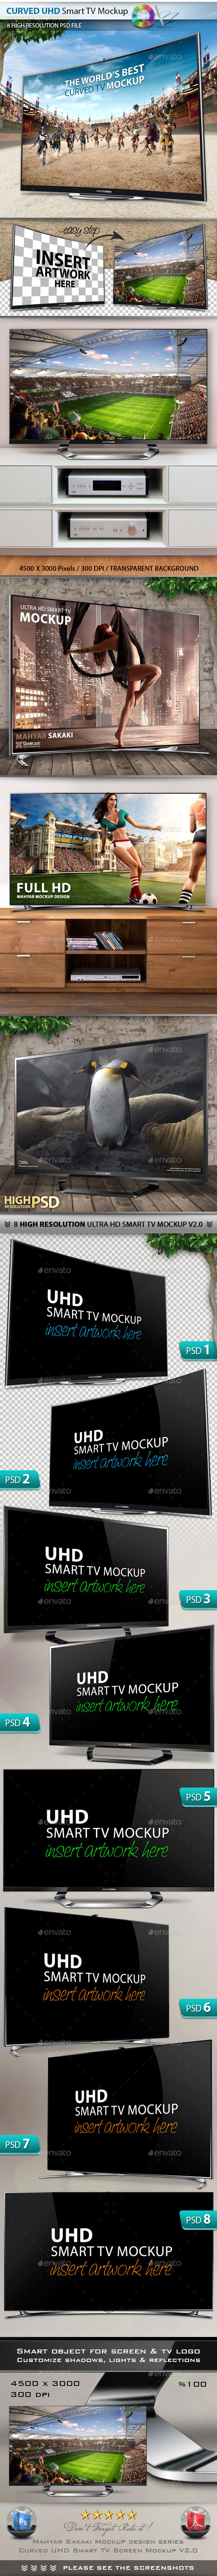 graphicriver_8_uhd_smart_screen_mockup_v20_10147978